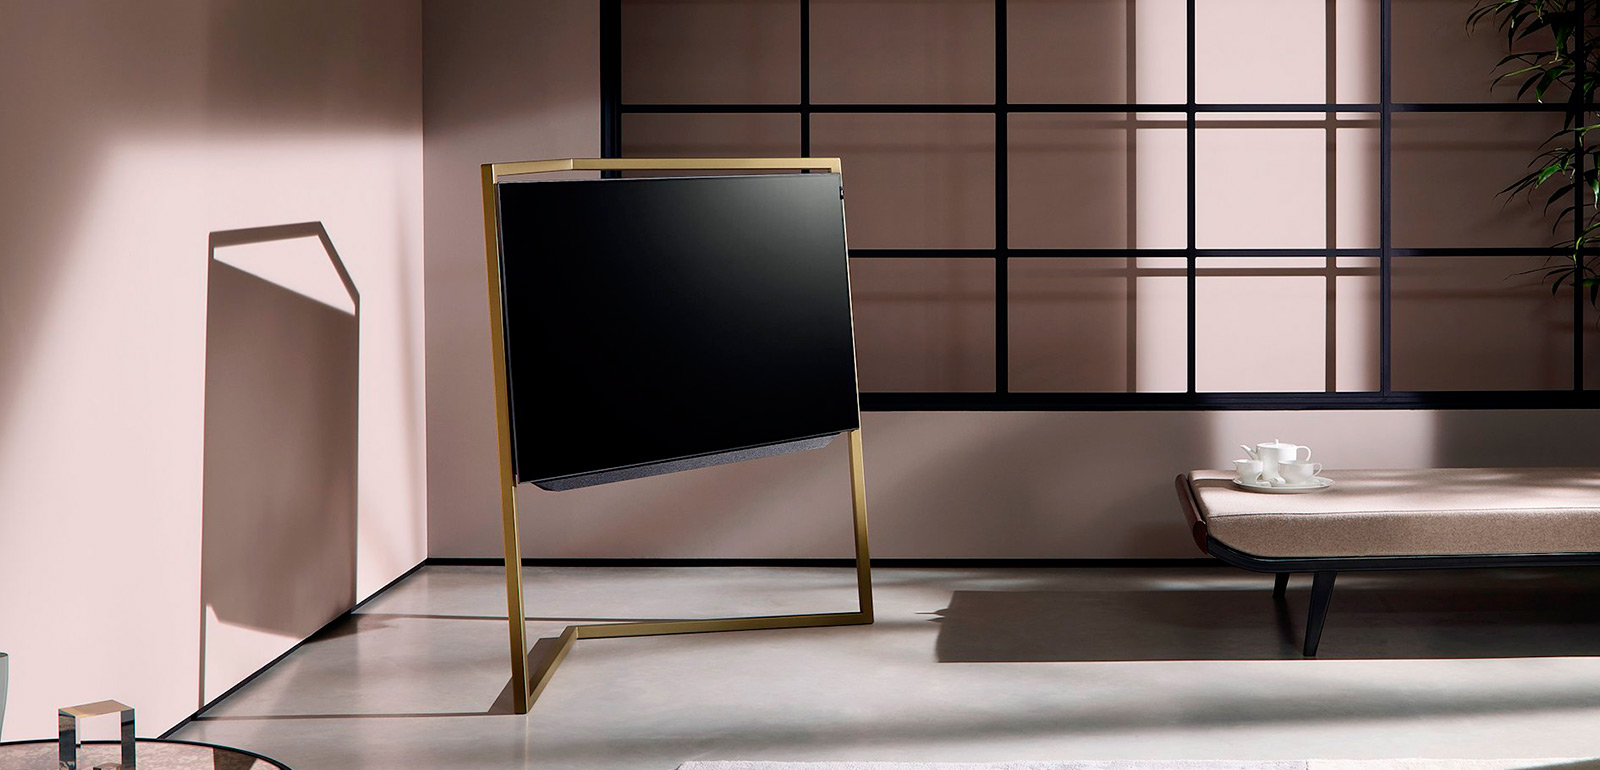 loewe bild 9 oled tv imboldn. Black Bedroom Furniture Sets. Home Design Ideas